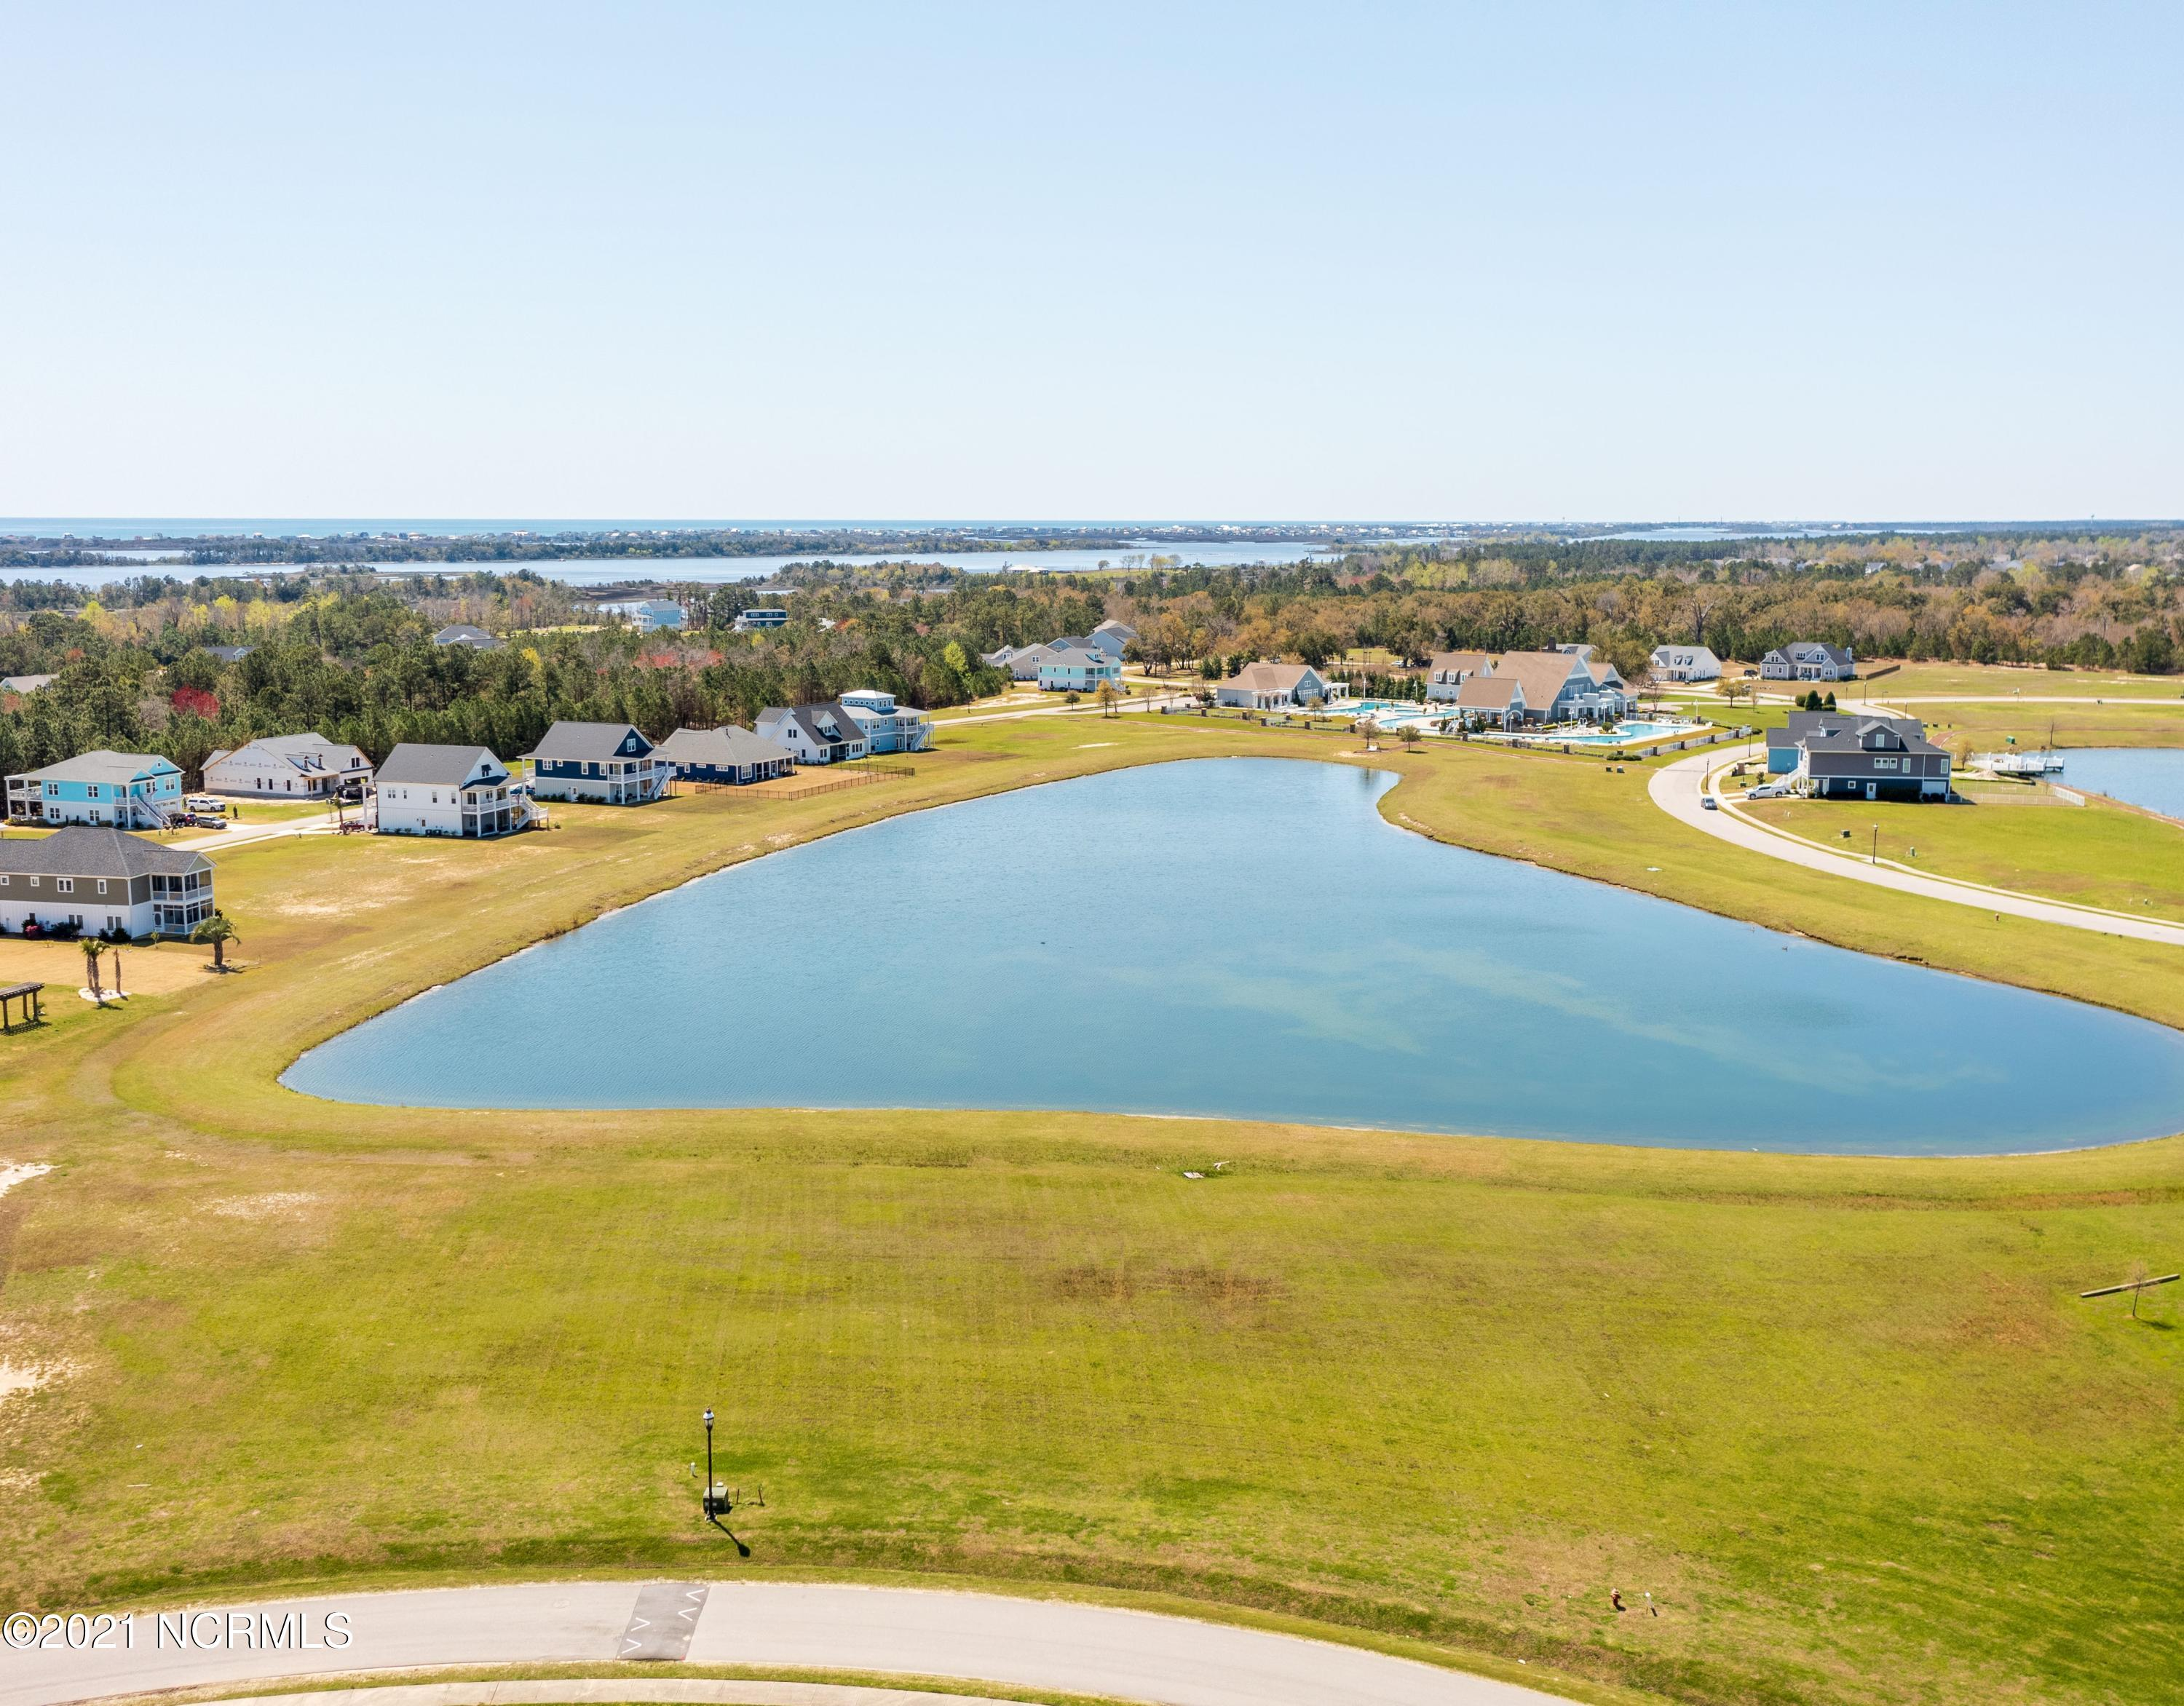 Don't miss this lake front lot on Moss Lake Lane with the perfect view of the clubhouse in the gated waterfront community of Summerhouse on Everett Bay.  It is waiting for you and your design.  Come build your dream home in this coastal community minutes from Topsail Island.  The Atlantic Ocean and the ICW offer many boating opportunities from the ramp and dock which are part of the amenities of this neighborhood.  Large Clubhouse, community pool, tennis, workout facility, nature trails, boat storage plus a day dock.  Short distance to the beaches, Camp Lejeune, Wilmington or Jacksonville.  Come check it out!!